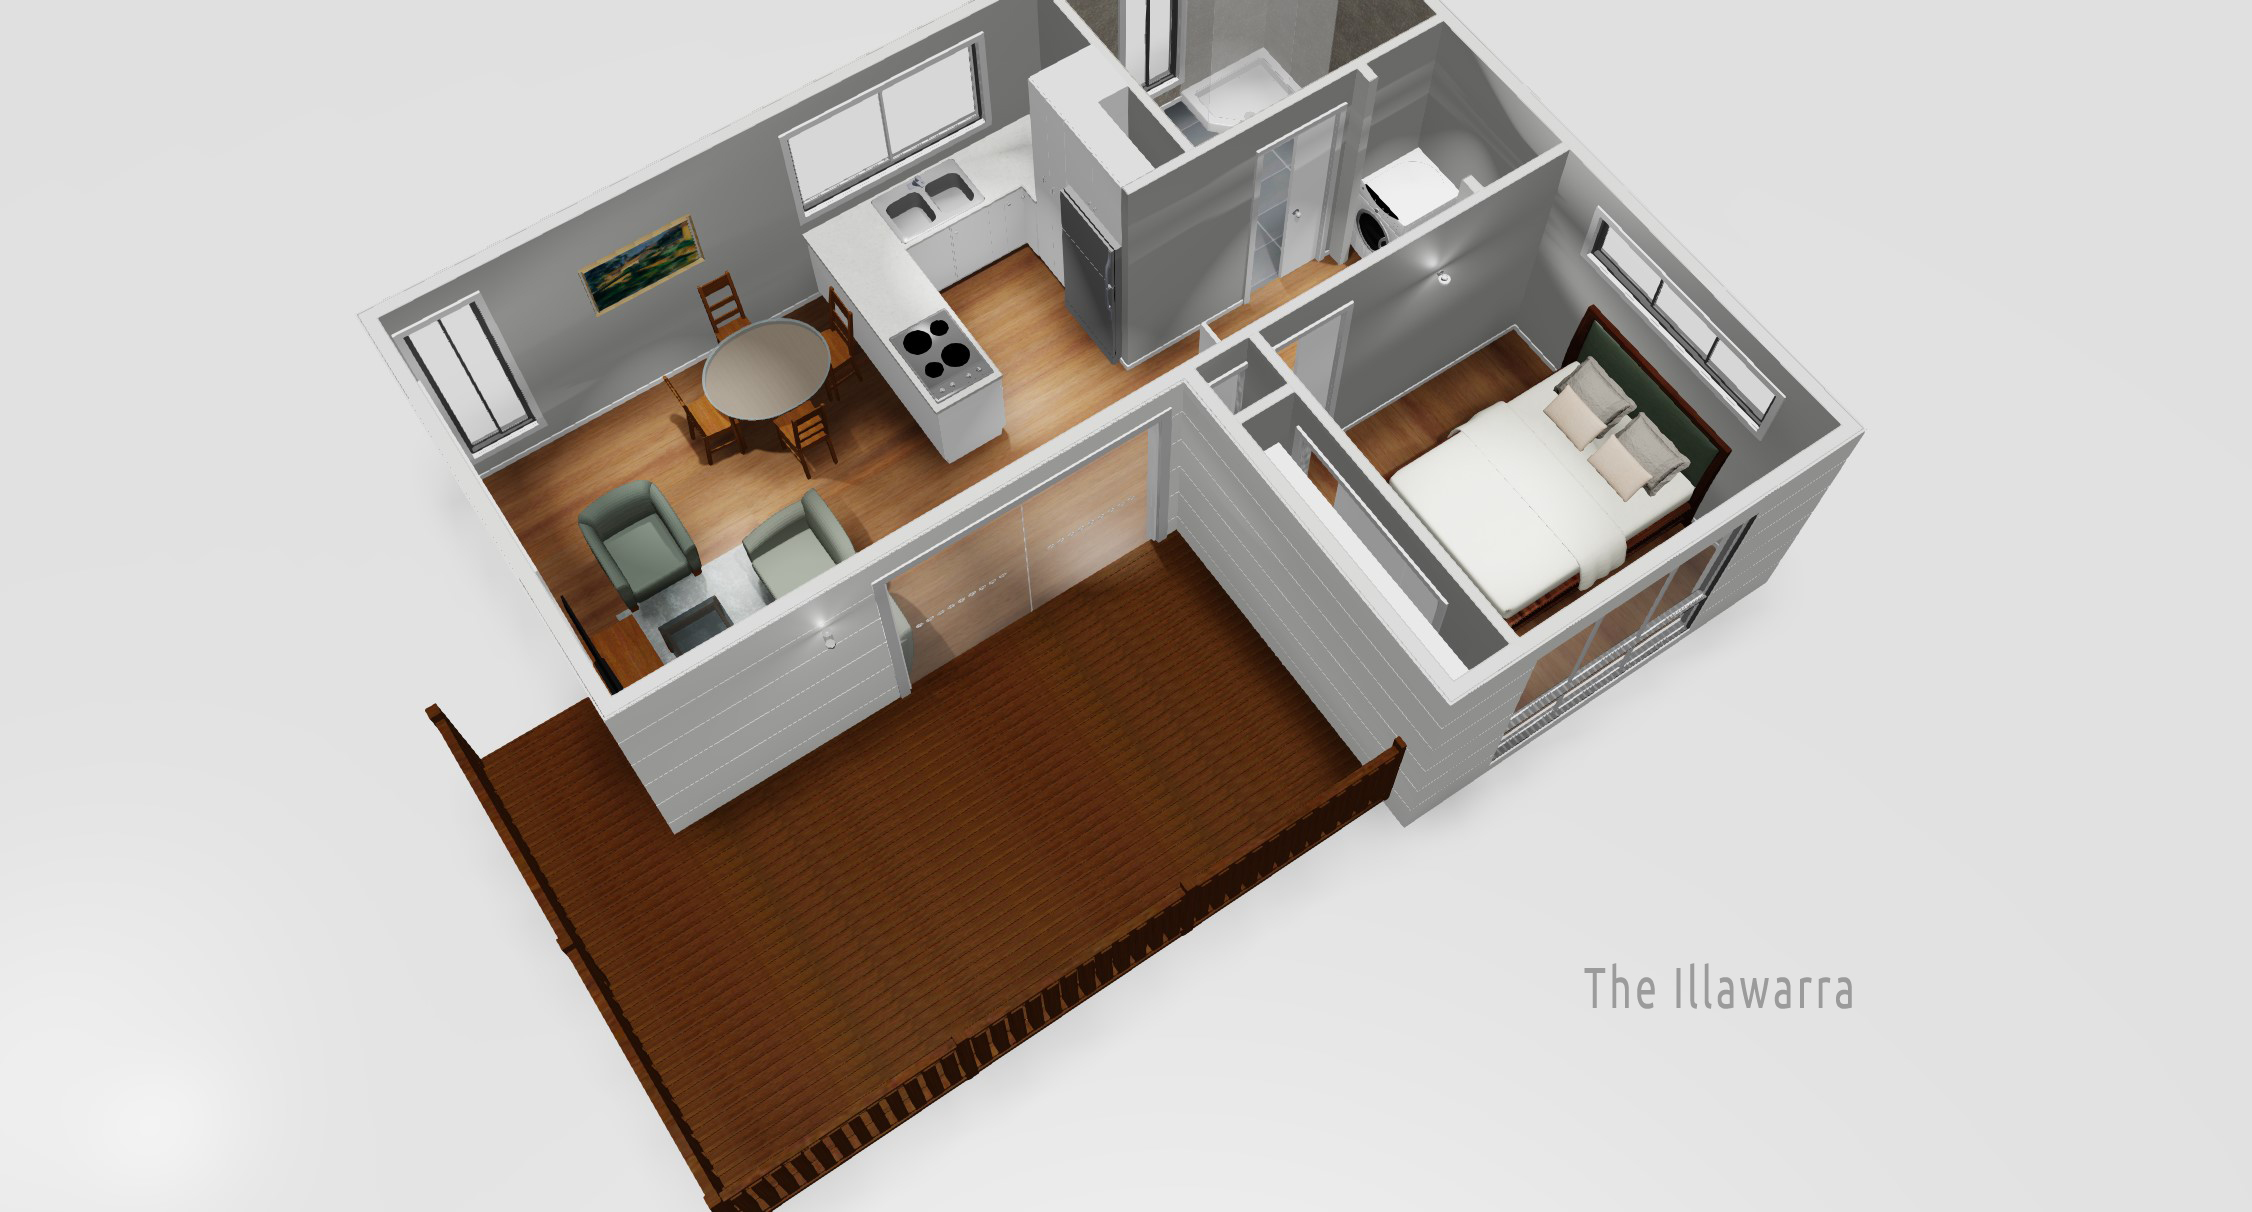 100 50m2 house design july 2013 bill house plans for Home design 50m2